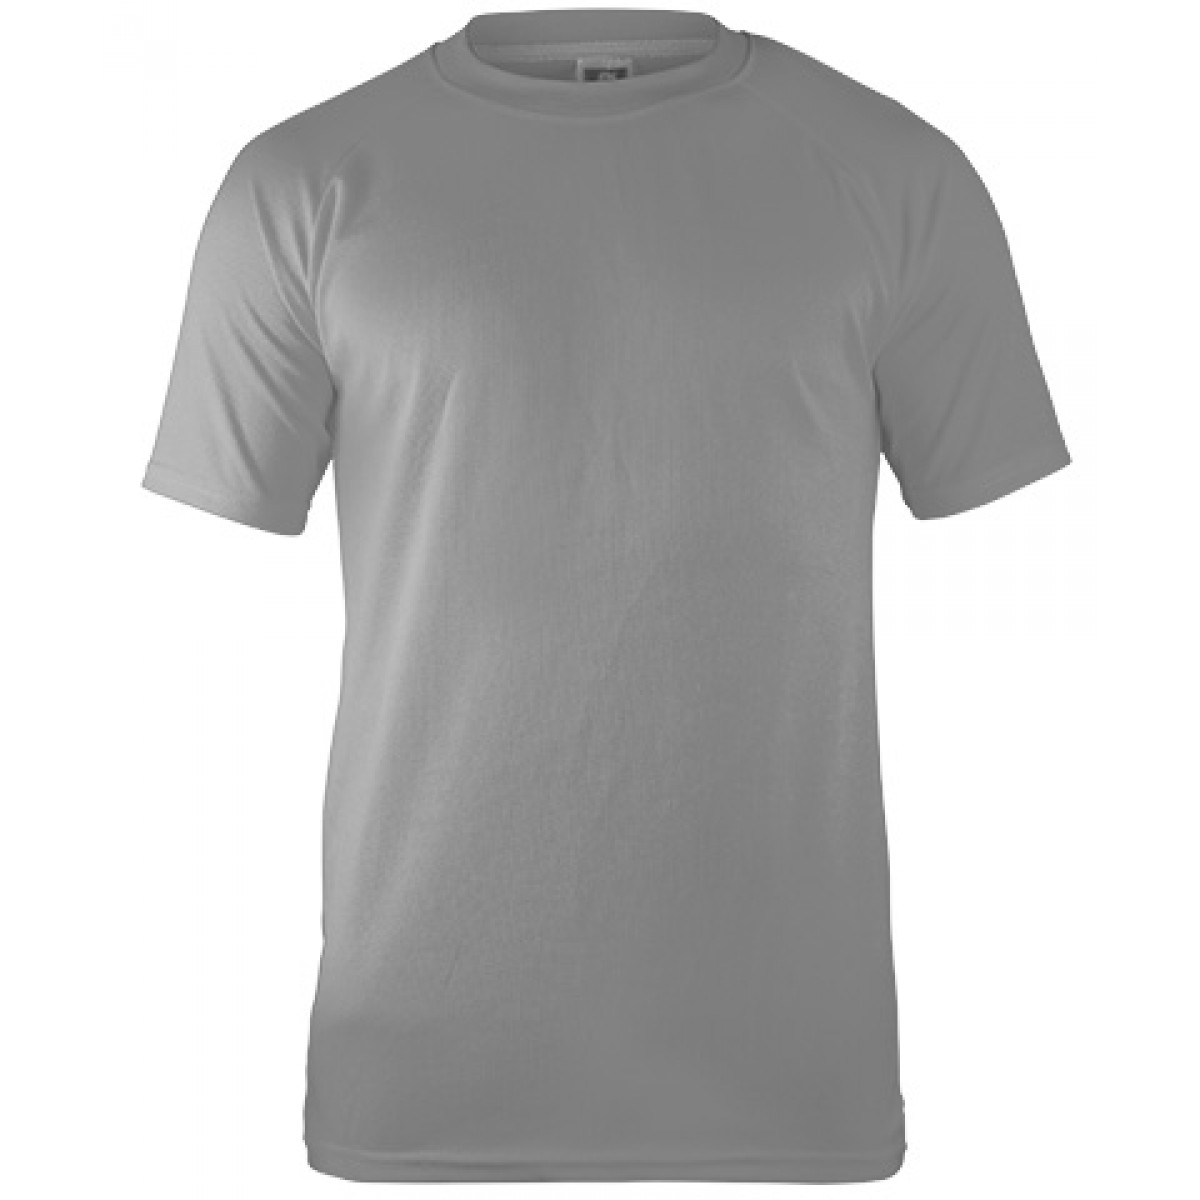 Performance T-shirt-Gray -L